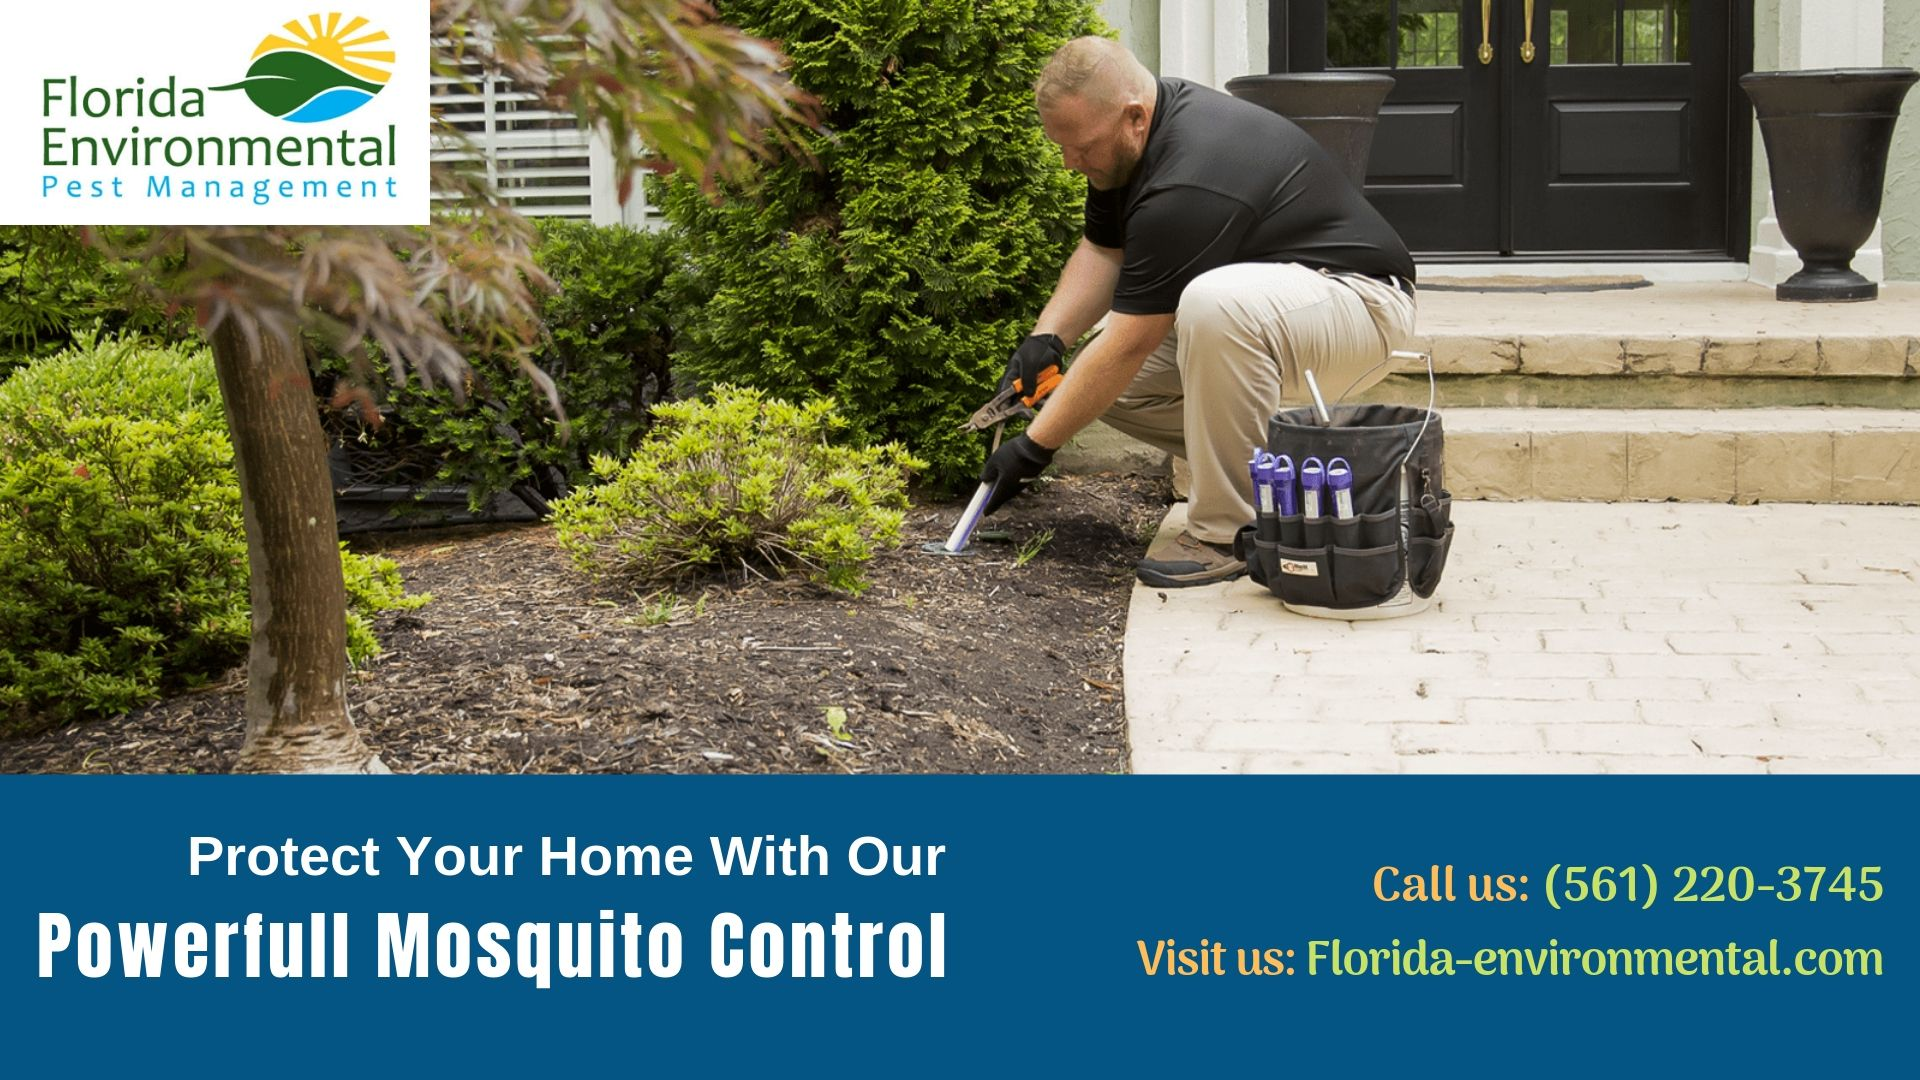 Are You Searching For Effective Mosquito Control Services At Florida Environmental Pest Management Have Mosquito Control Pest Management Pest Control Services